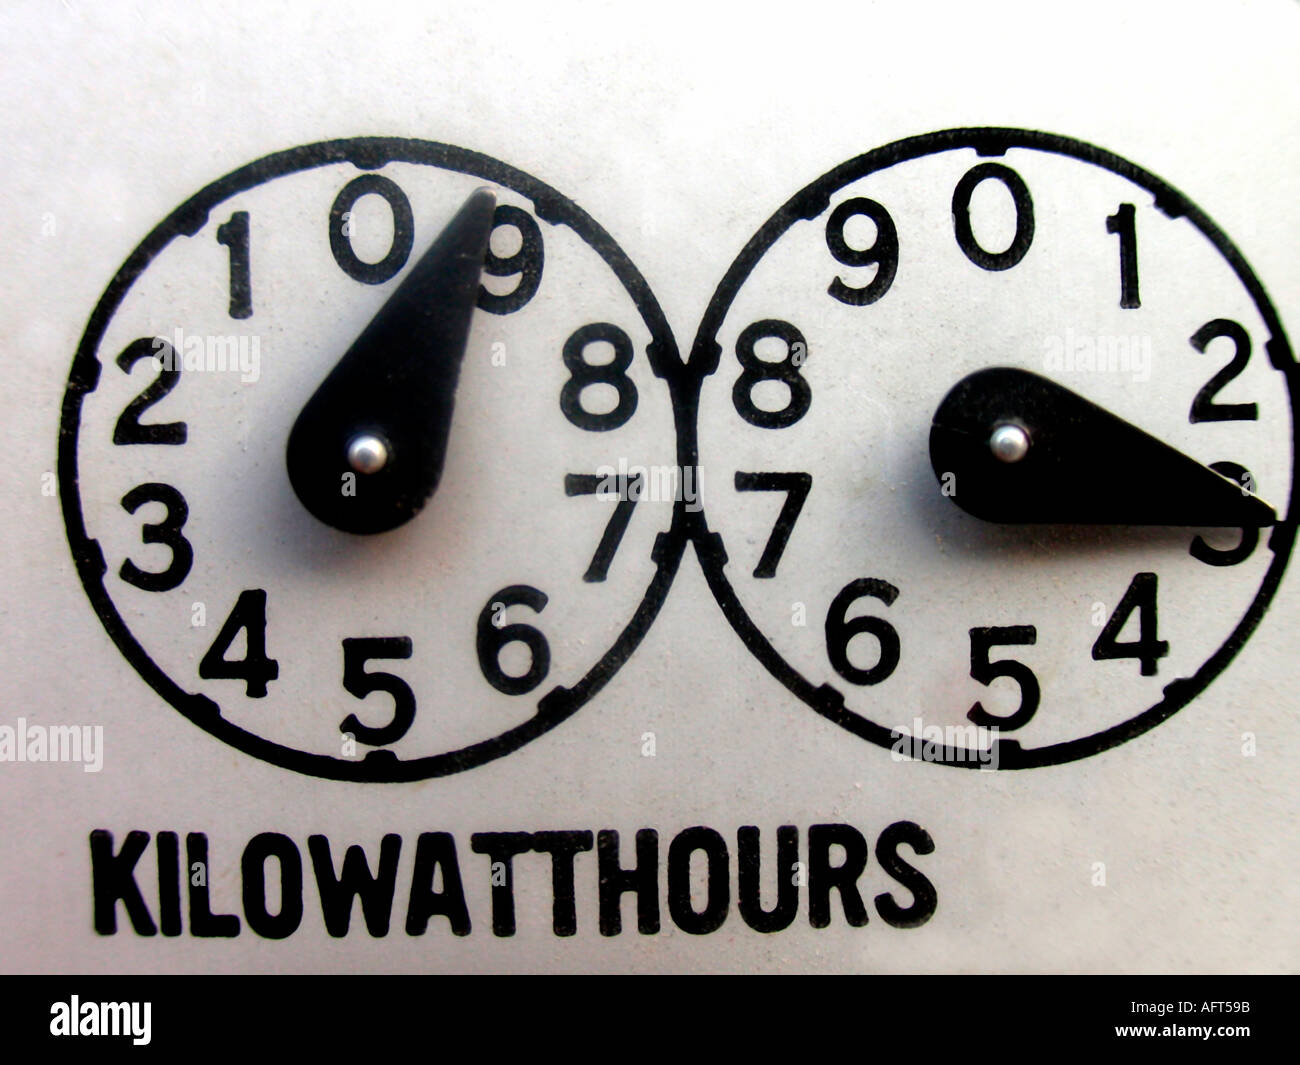 Upclose View of Electric Metering Clock, Kilowatthours, Usage, Billing, Energy Use - Stock Image